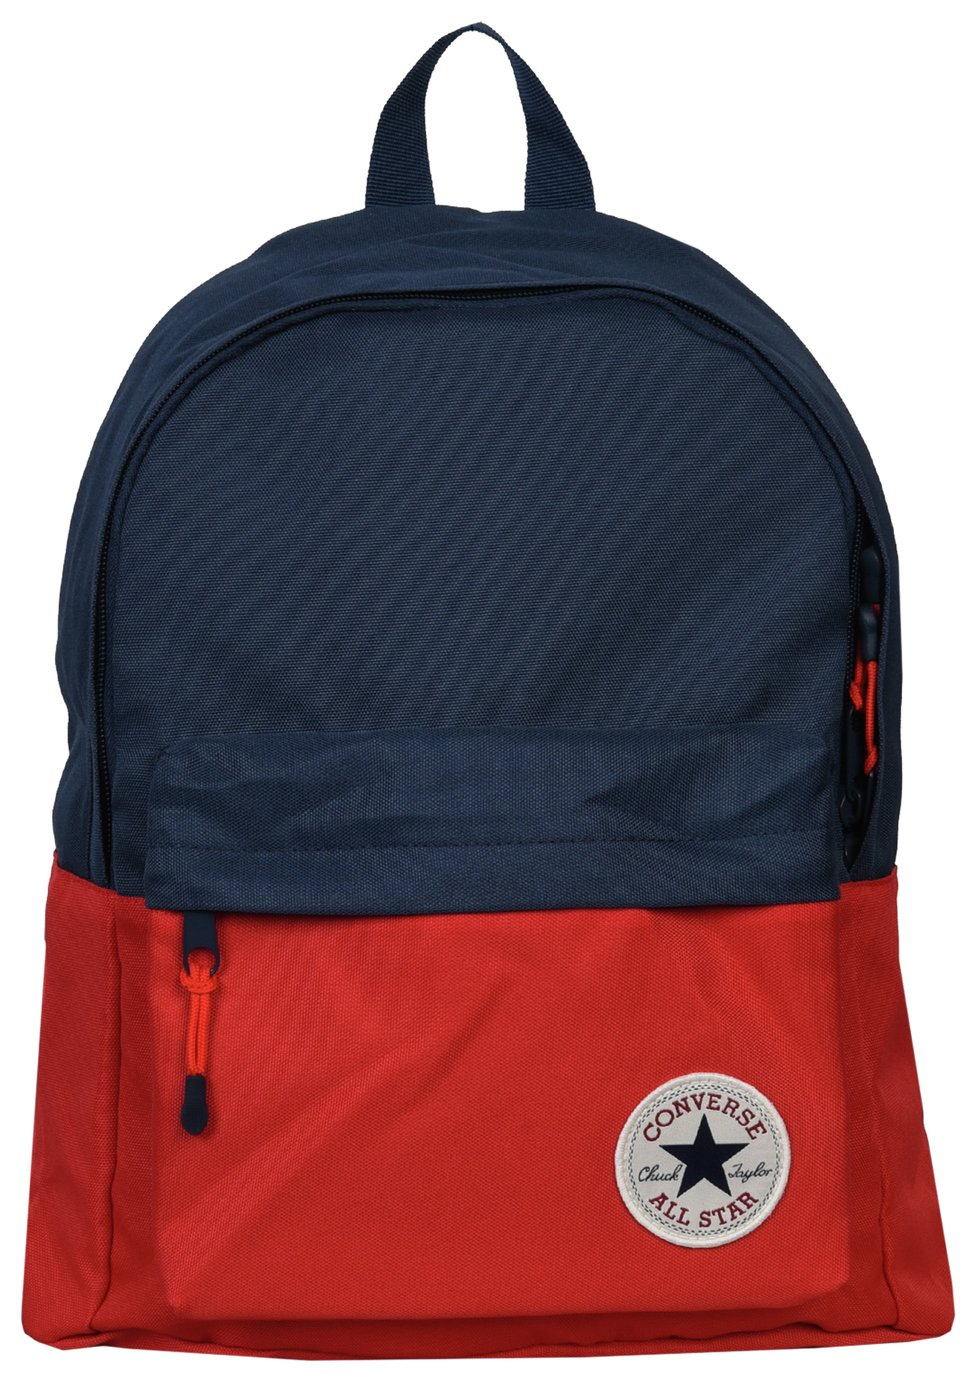 a7e6166849da Converse All Star Backpack - Navy Blue and Red from Converse